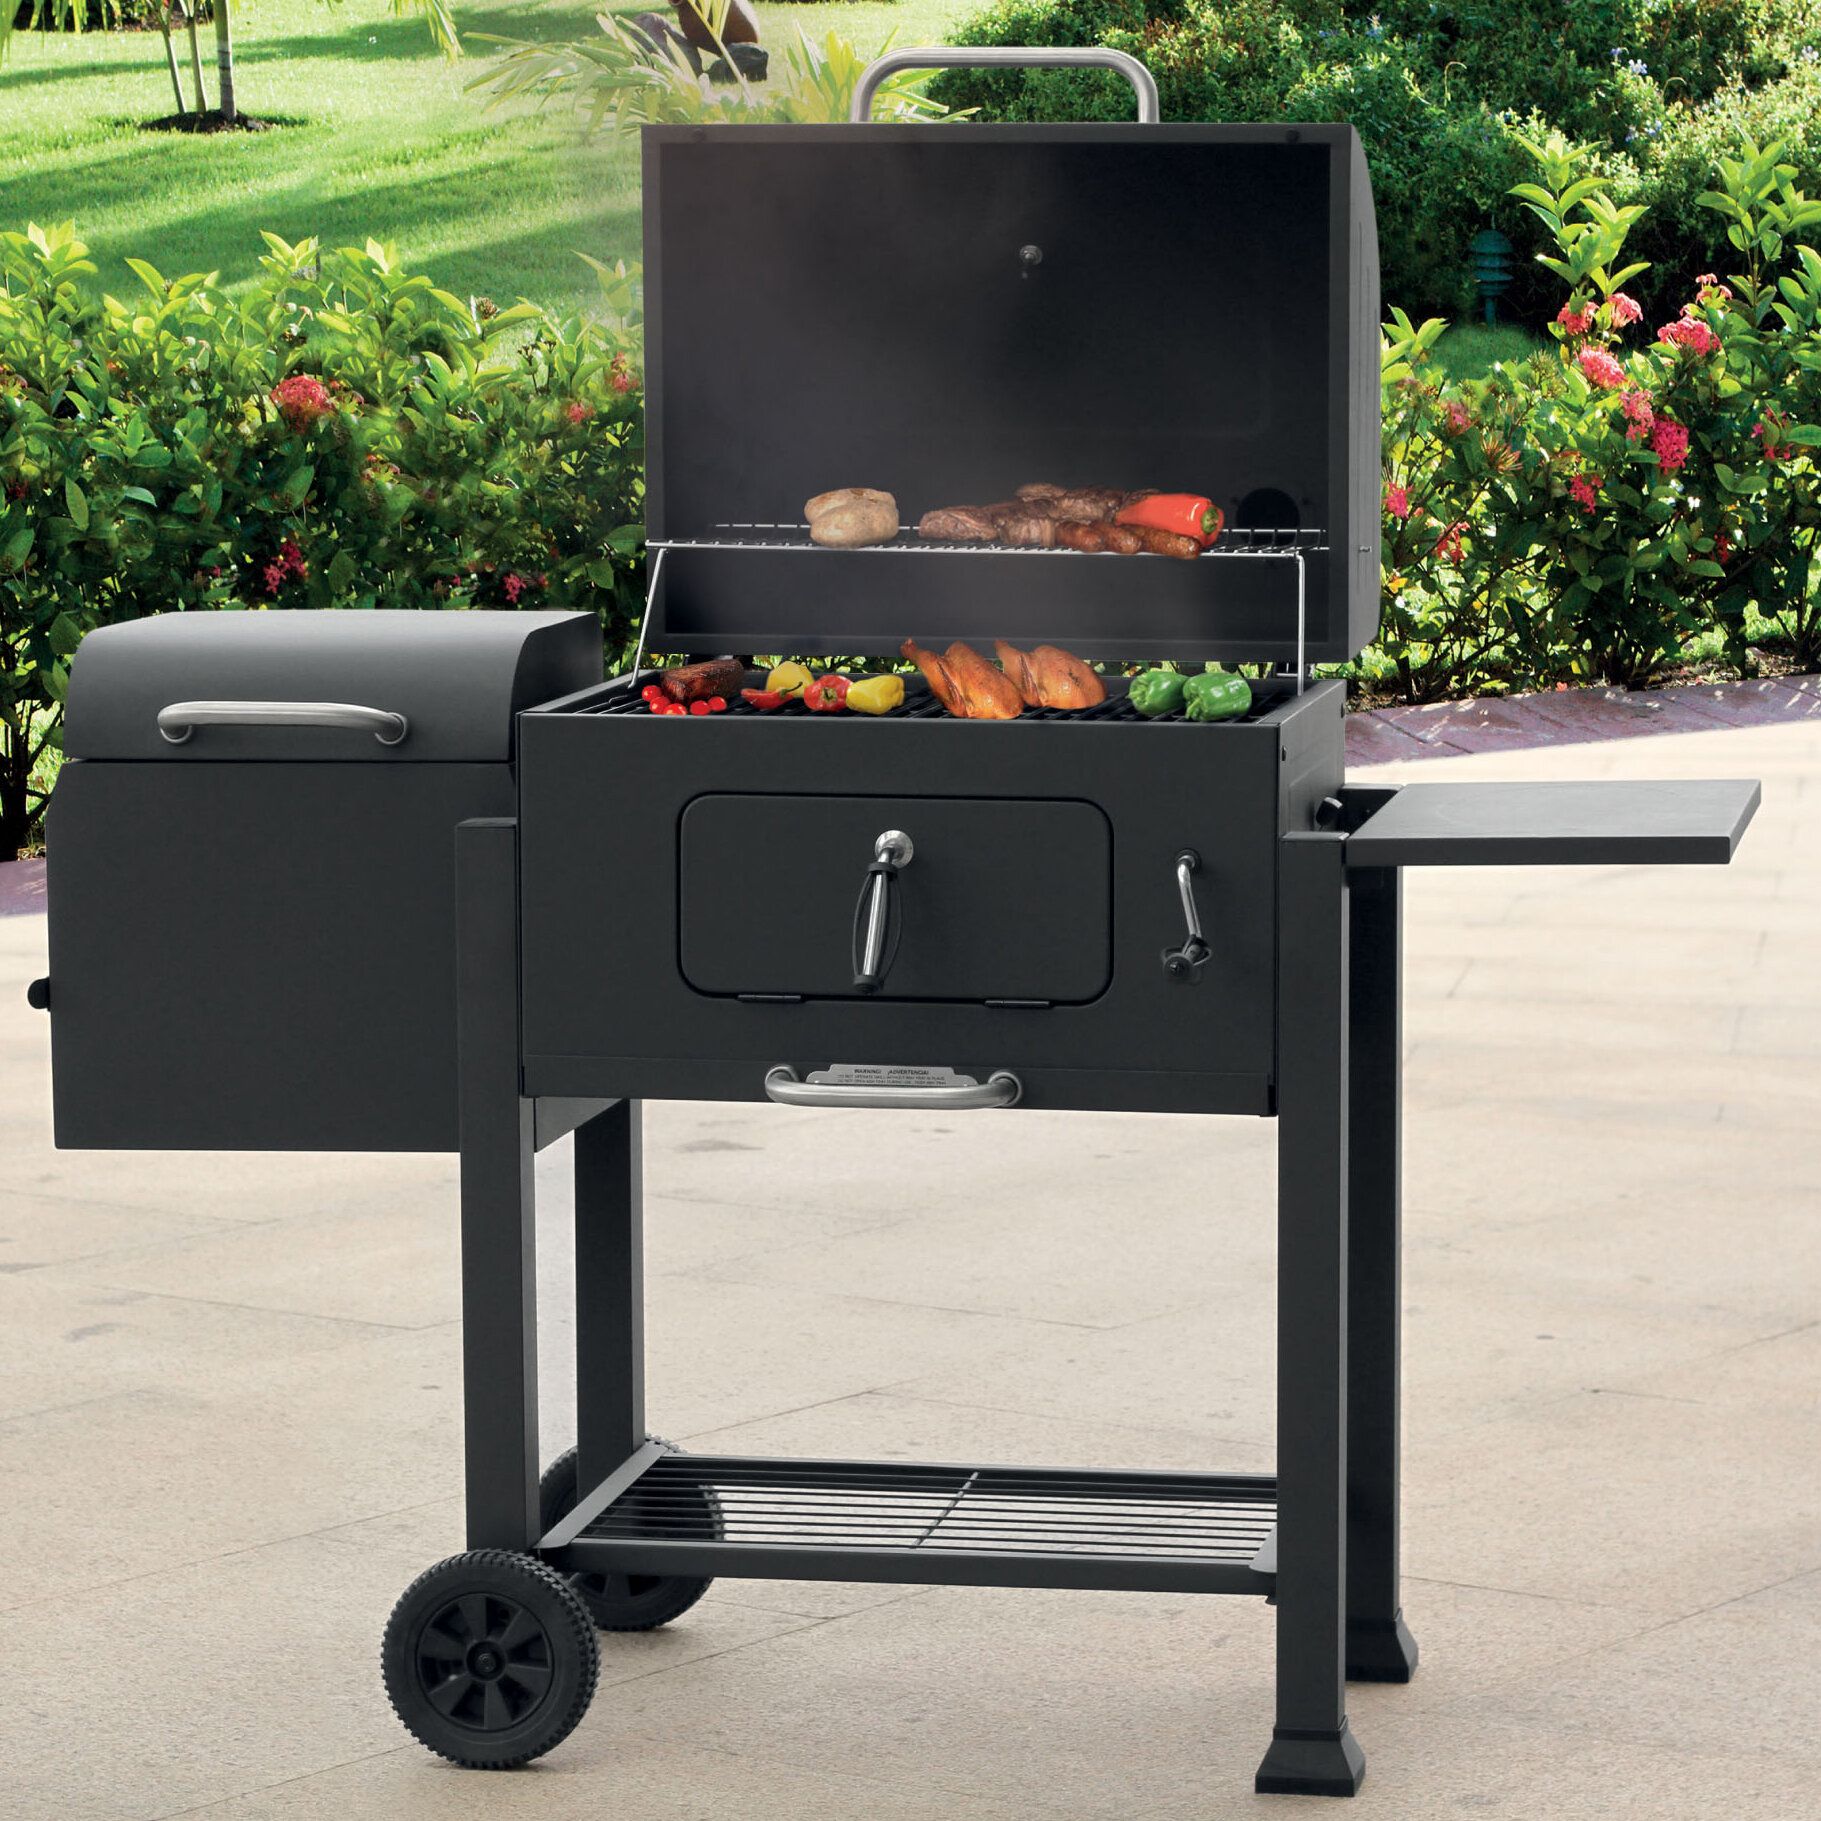 Landmann 11 Vista Barbecue Charcoal Grill With Smoker Reviews Wayfair